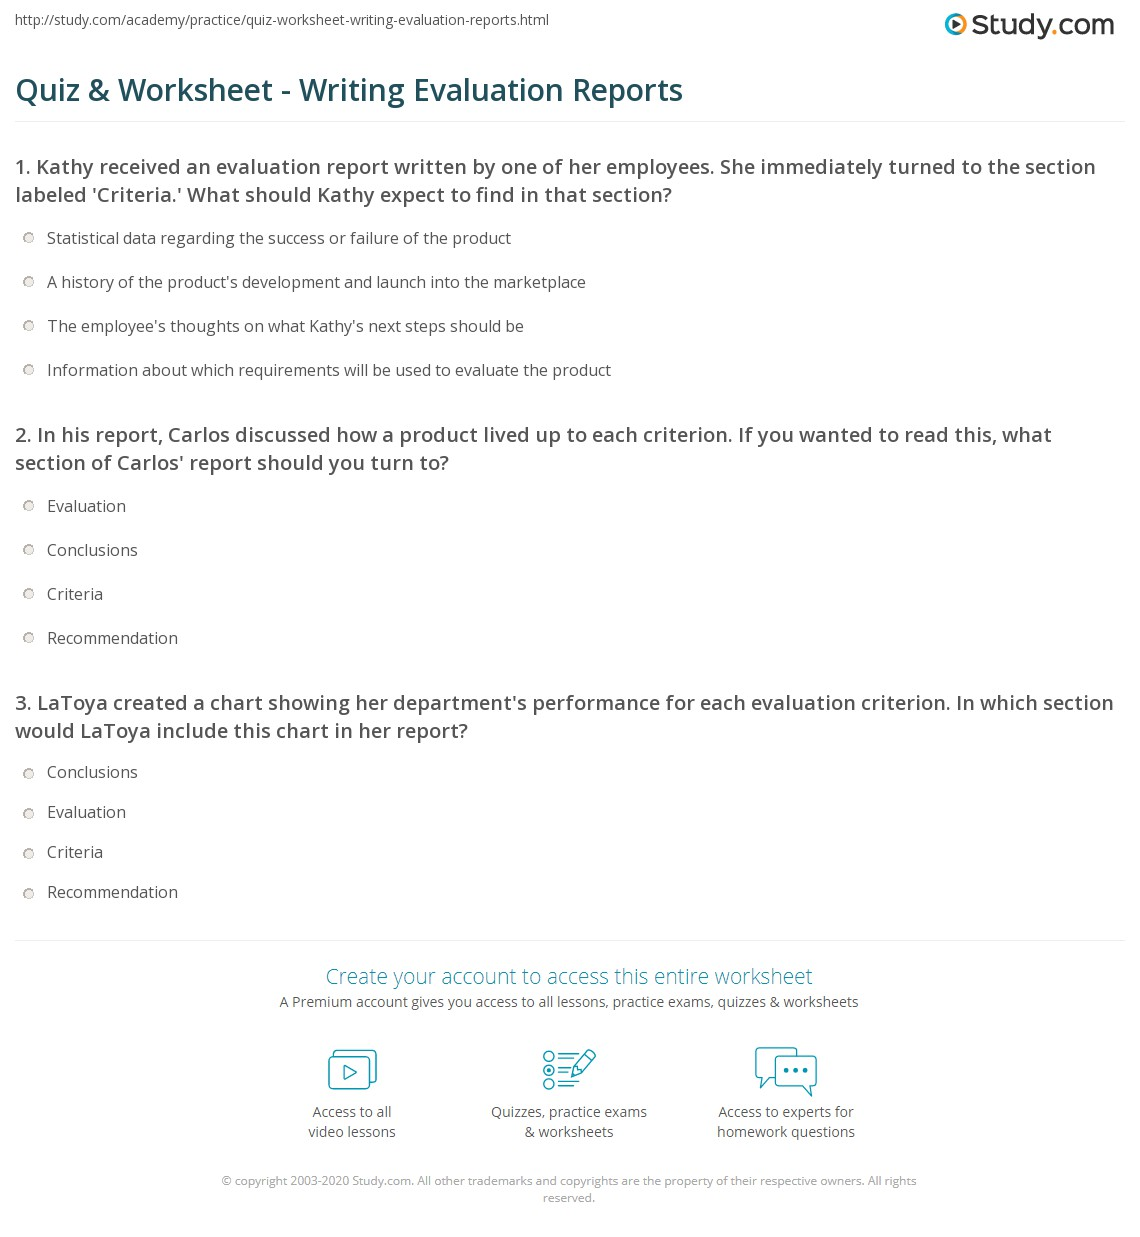 Quiz worksheet writing evaluation reports study print how to write evaluation reports purpose structure content worksheet thecheapjerseys Choice Image